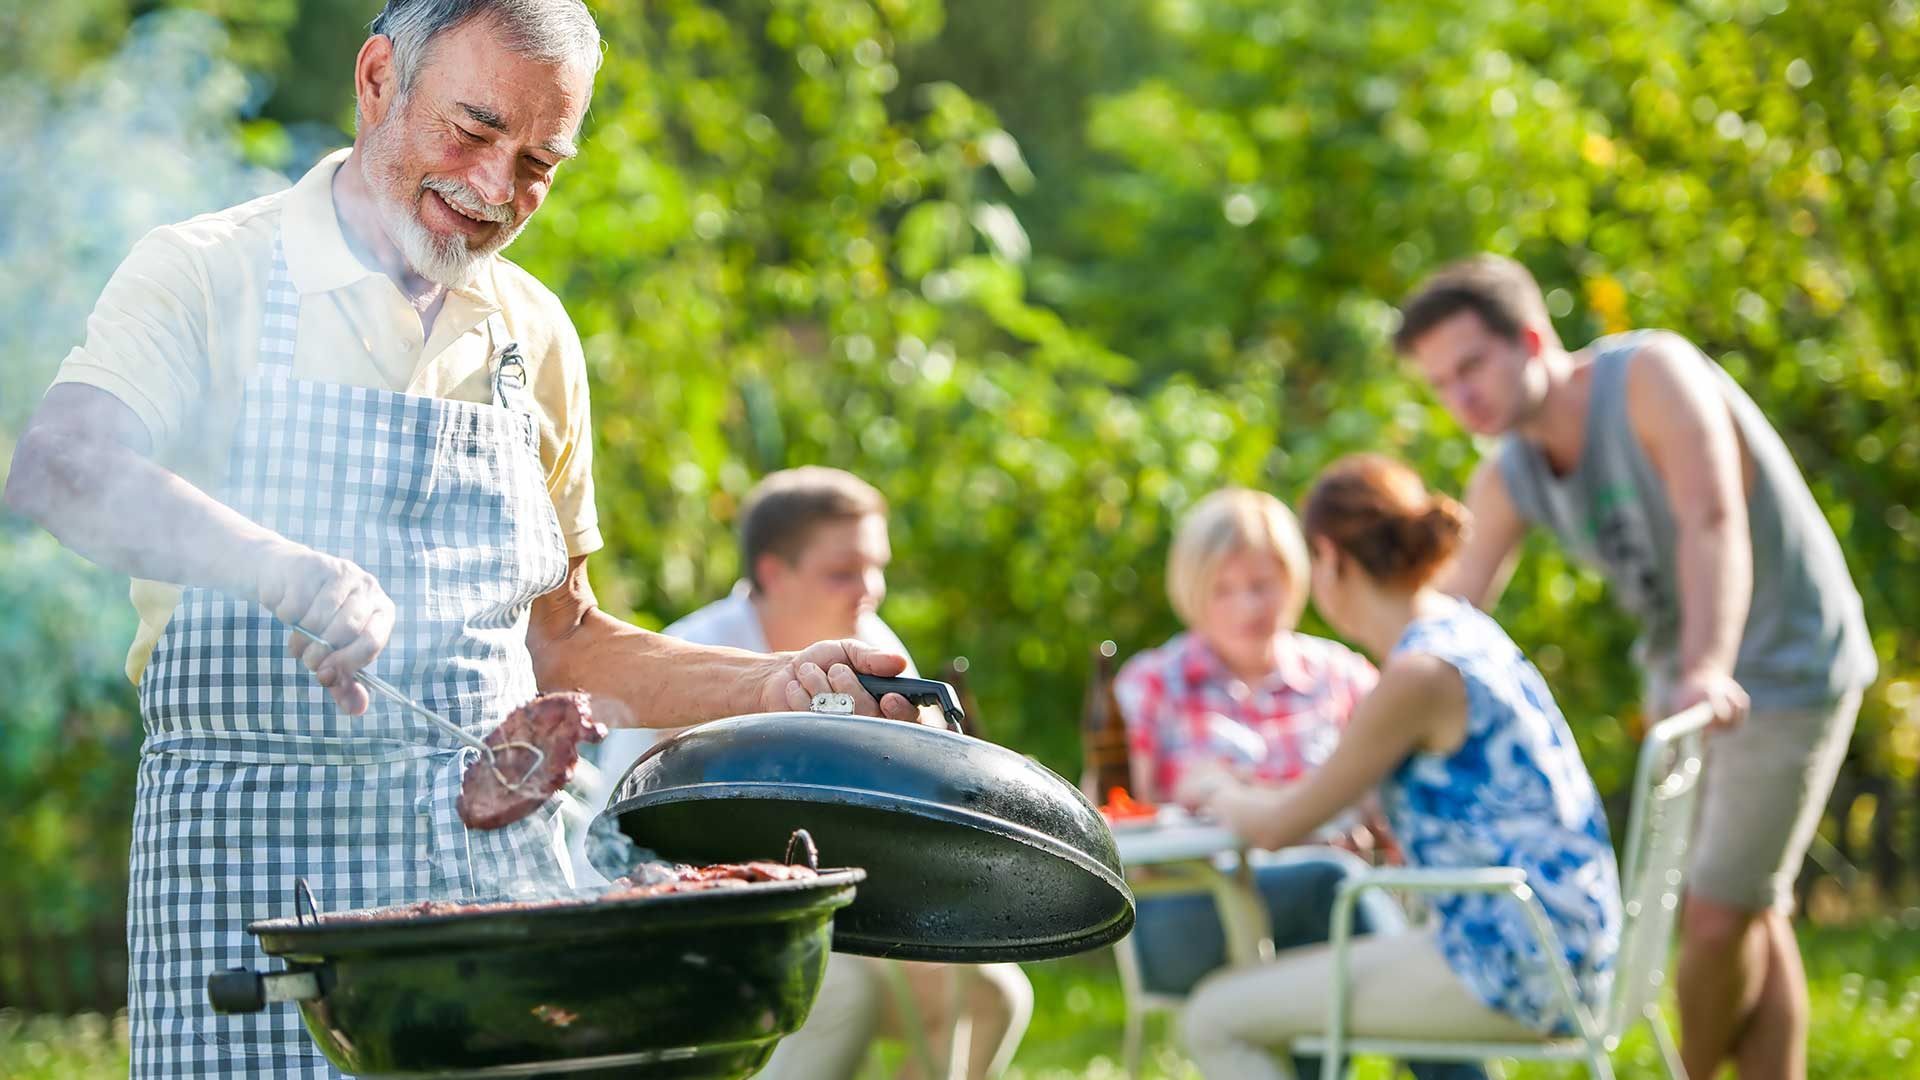 'Unions-Are-Ruining-This-Country'-Says-Uncle-Barbecuing-on-Labor-Day.jpg